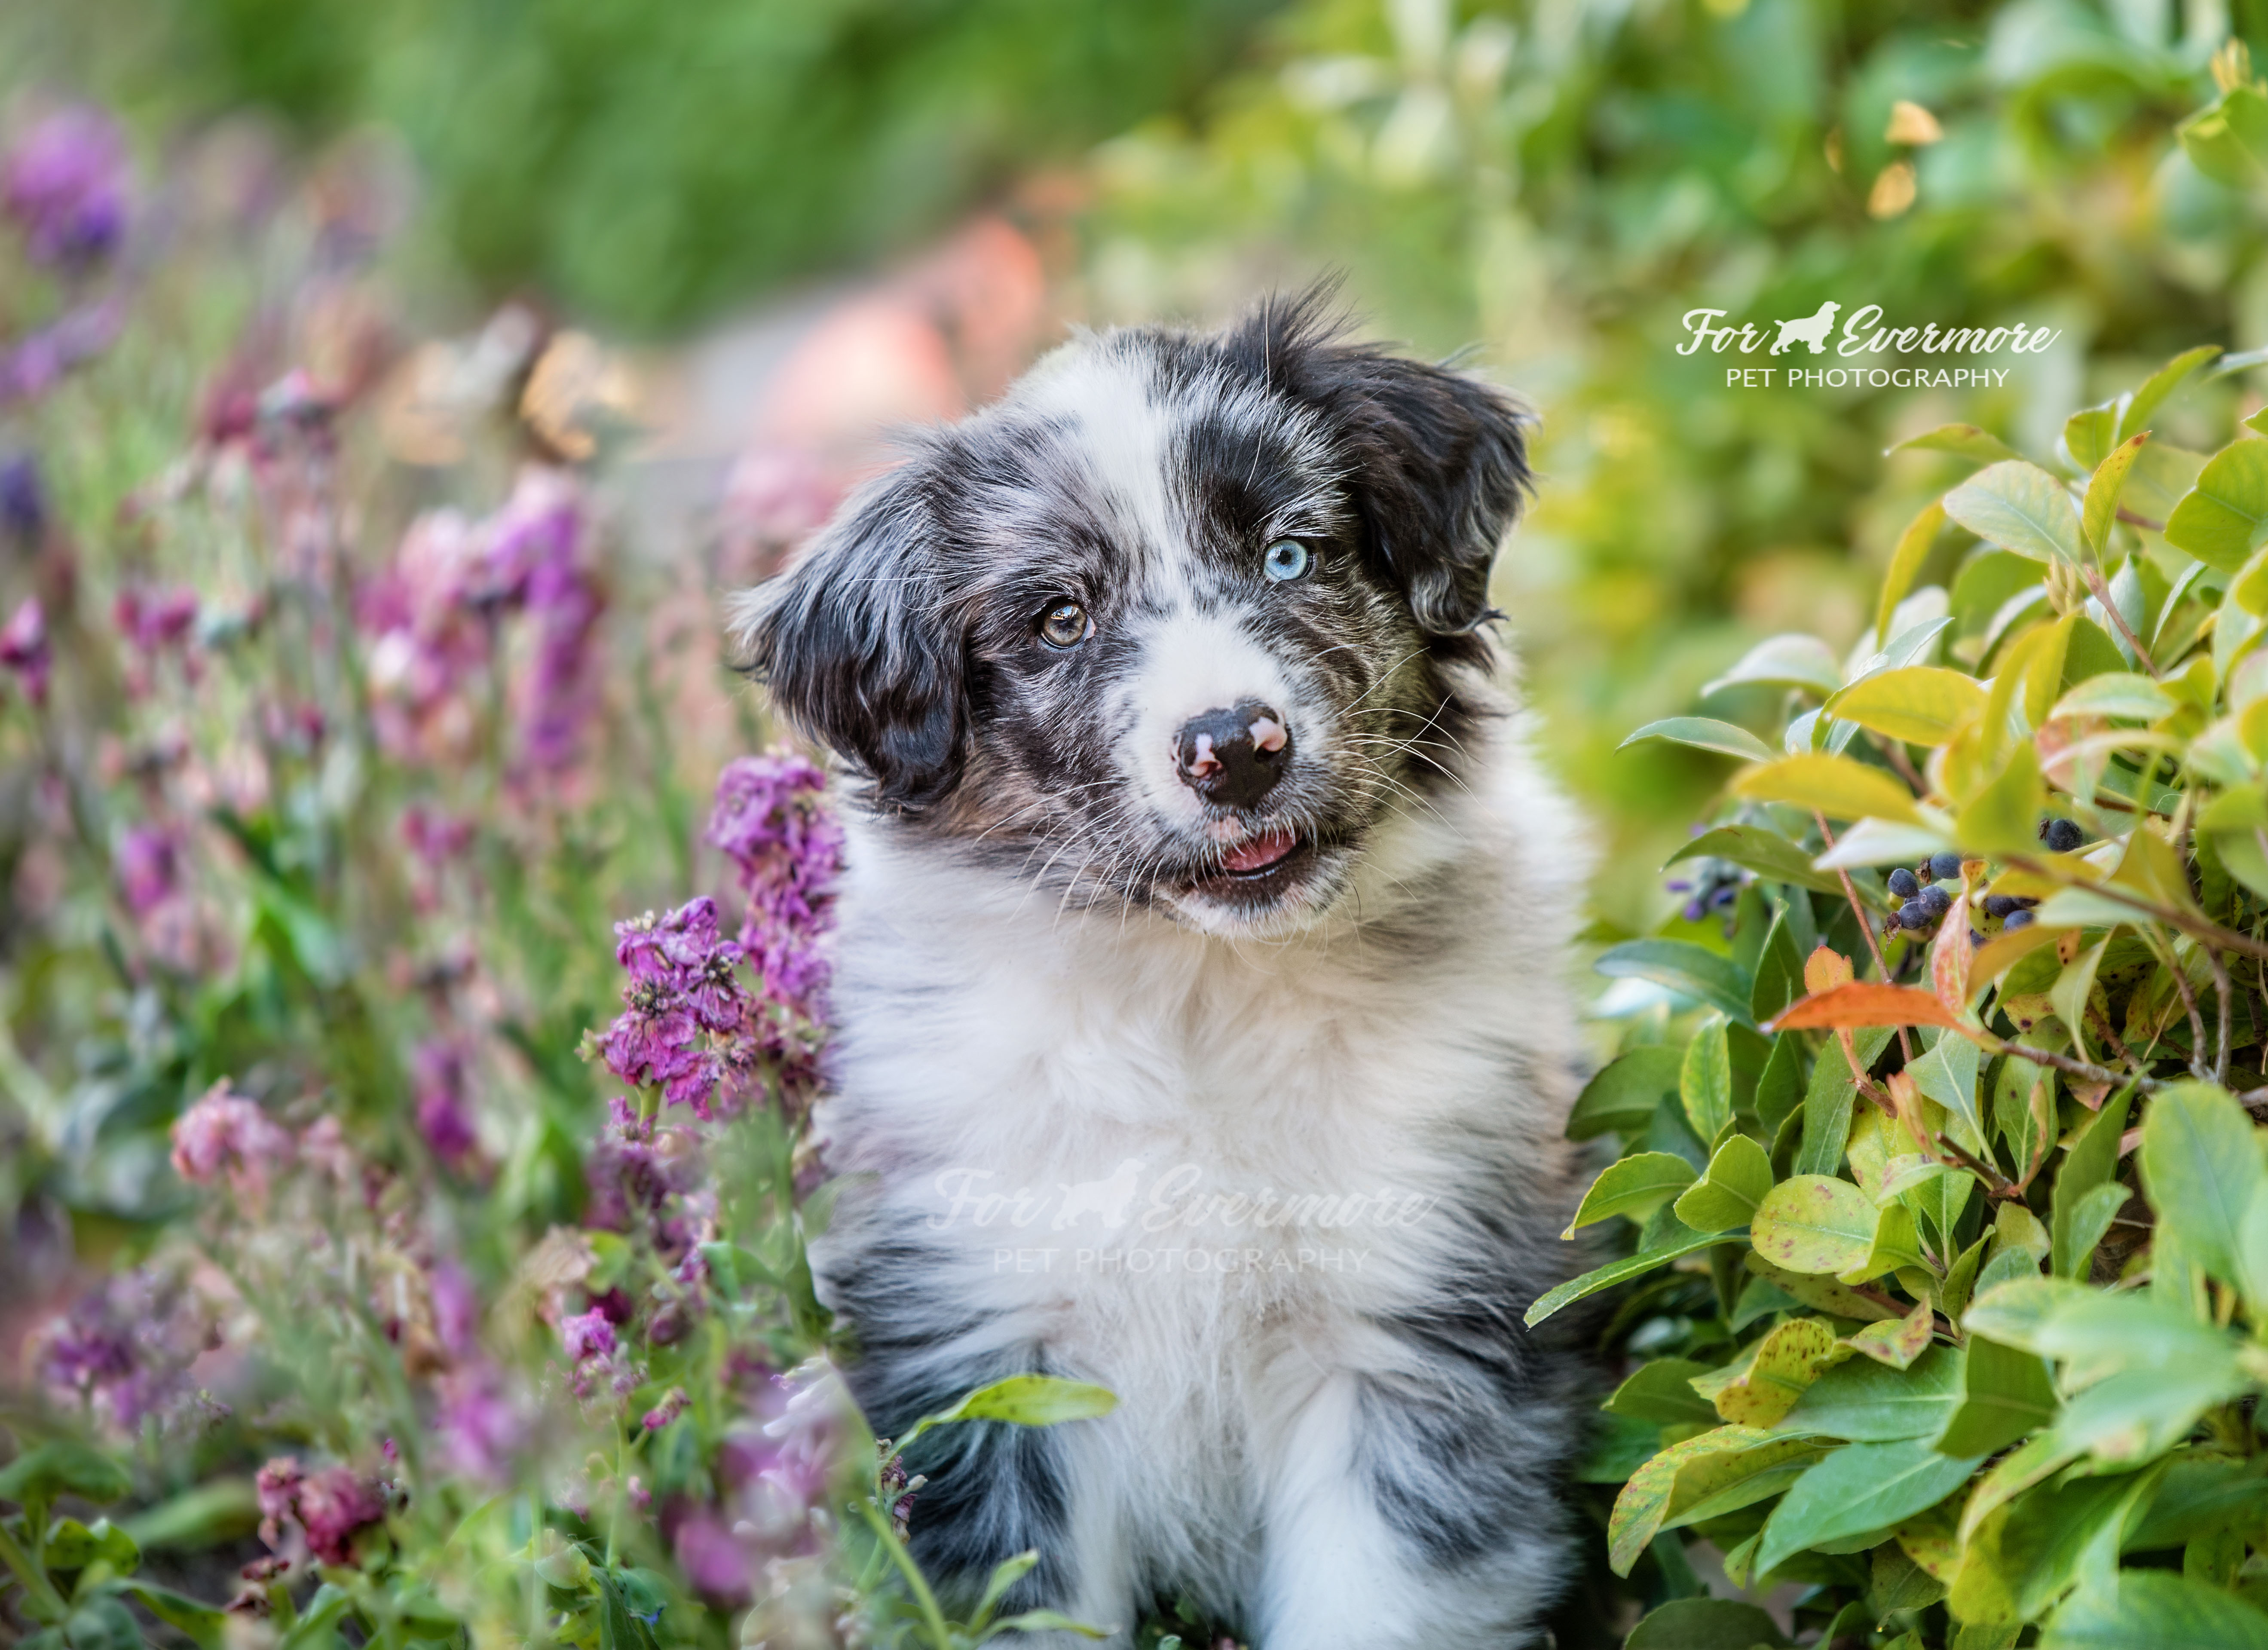 Oliver a 10 week old Aussie